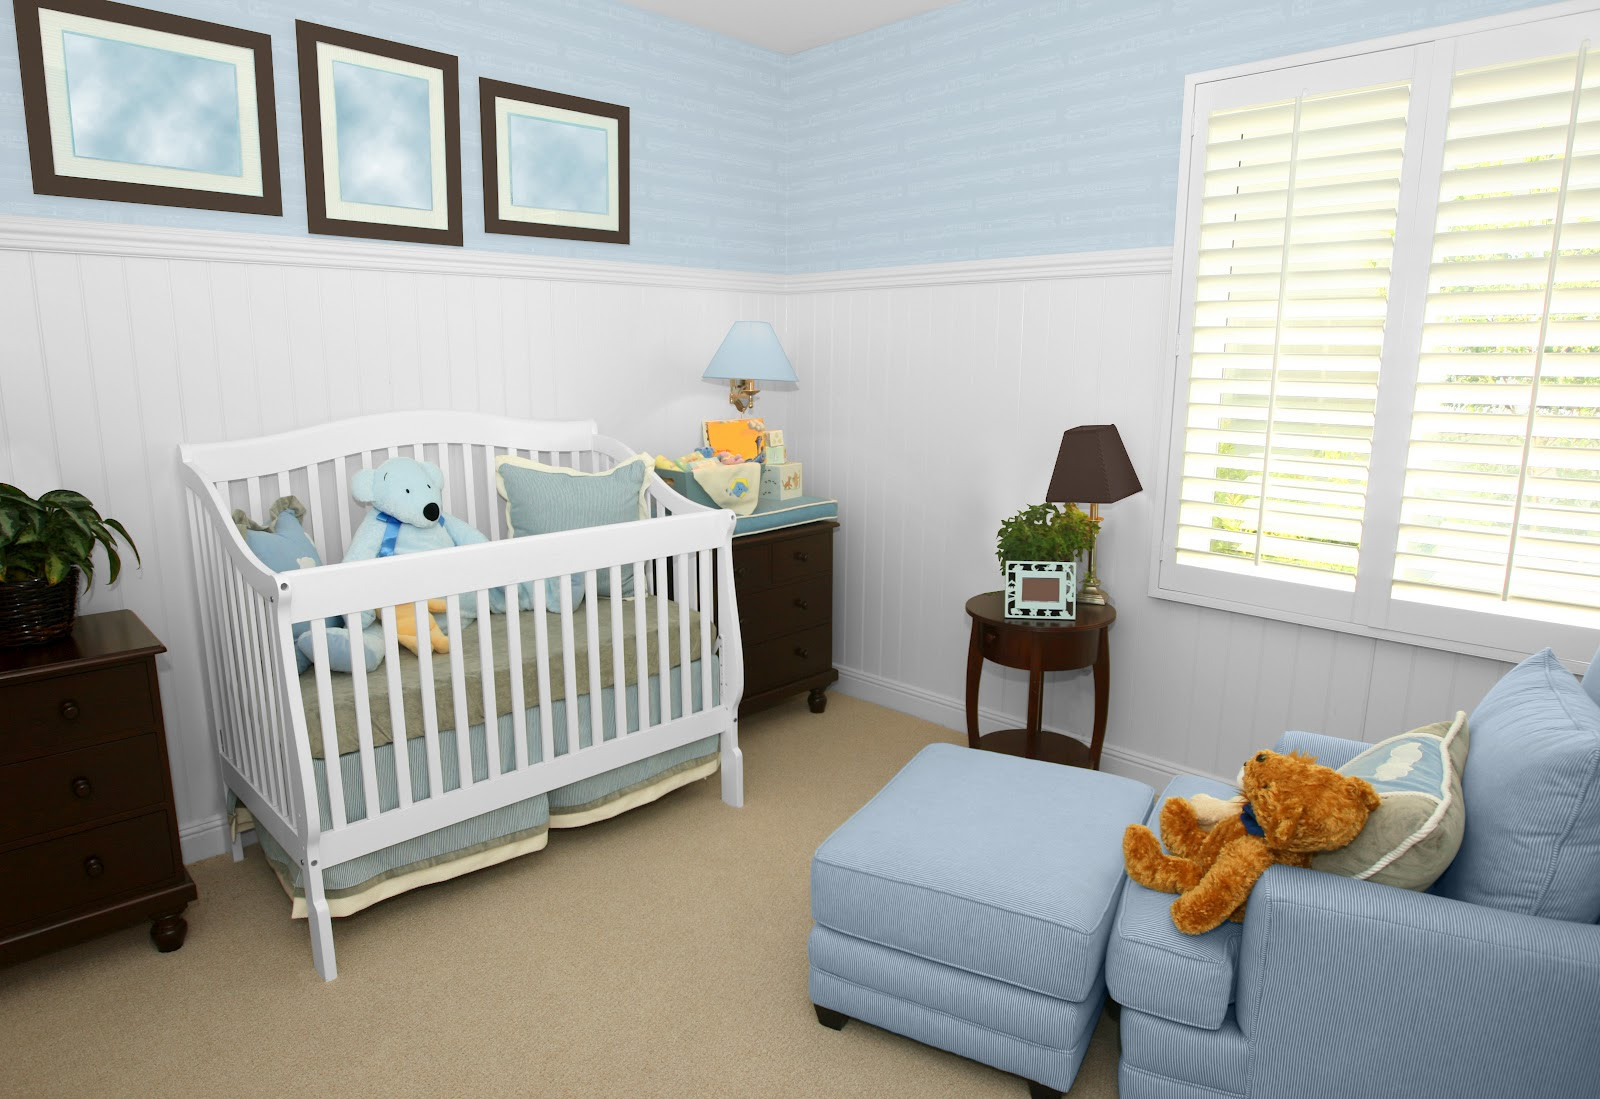 Decor Ideas For Baby Rooms  Top 10 Baby Nursery Room Colors And Decorating Ideas